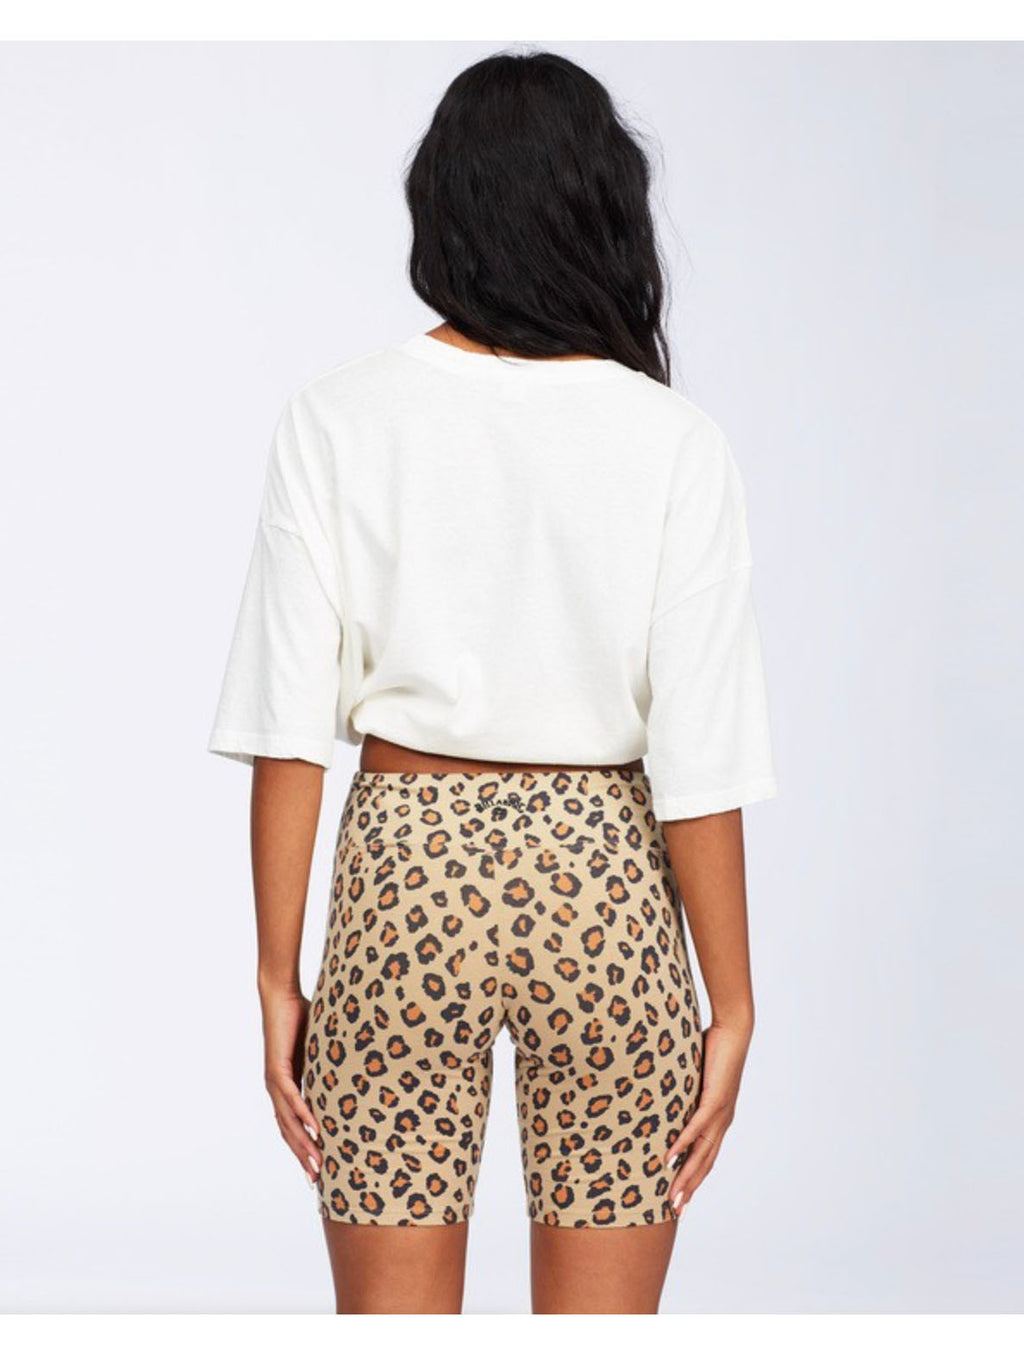 Billabong Biker Babe Shorts in Cheetah